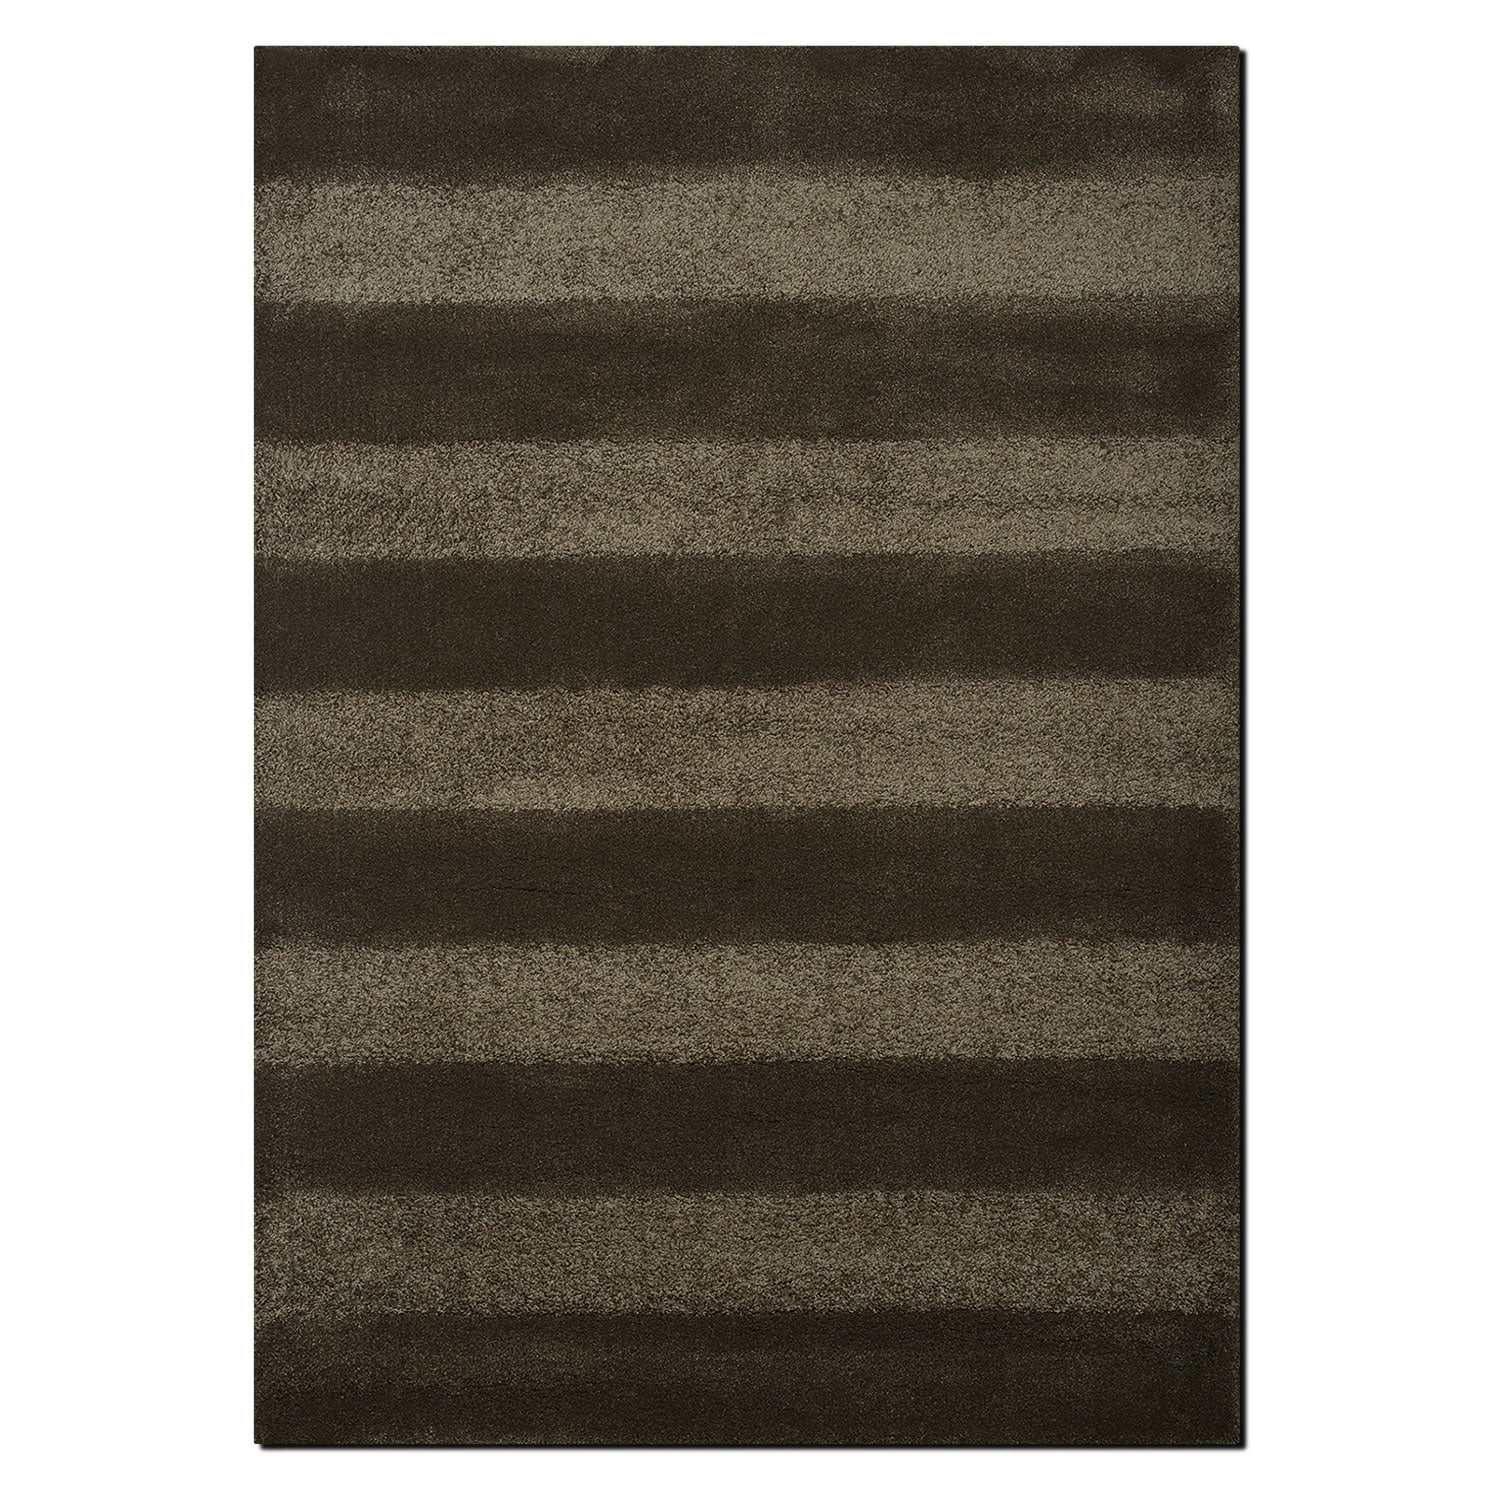 Elements 8' x 10' Area Rug - Smoke